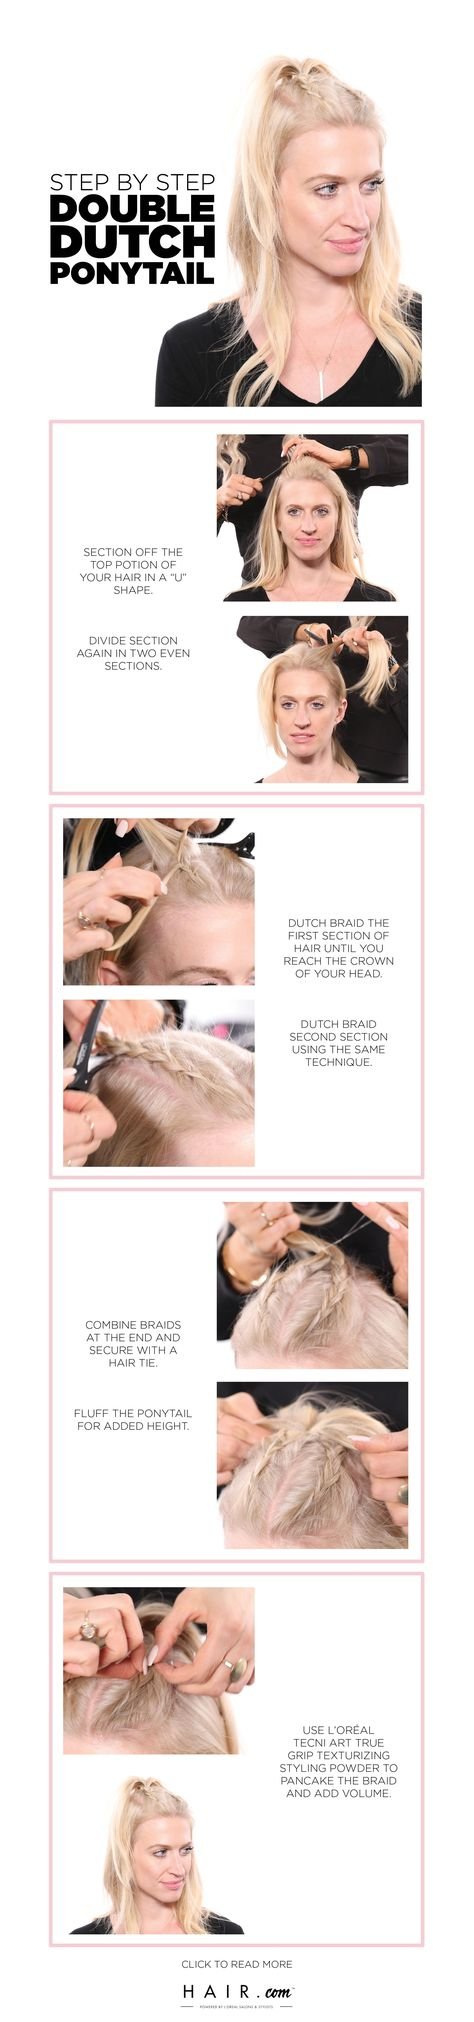 Learn how to style a half-up double dutch braided ponytail. This french braid hairstyle is perfect for second day hair and adds texture for a voluminous finish. Discover expert tips and the best products to style this half-up half-down pony. # tight dutch Braids How To Style A Half-Up Double Dutch Braid The Expert-Approved Way # dutch Braids pony tail # dutch Braids pony tail